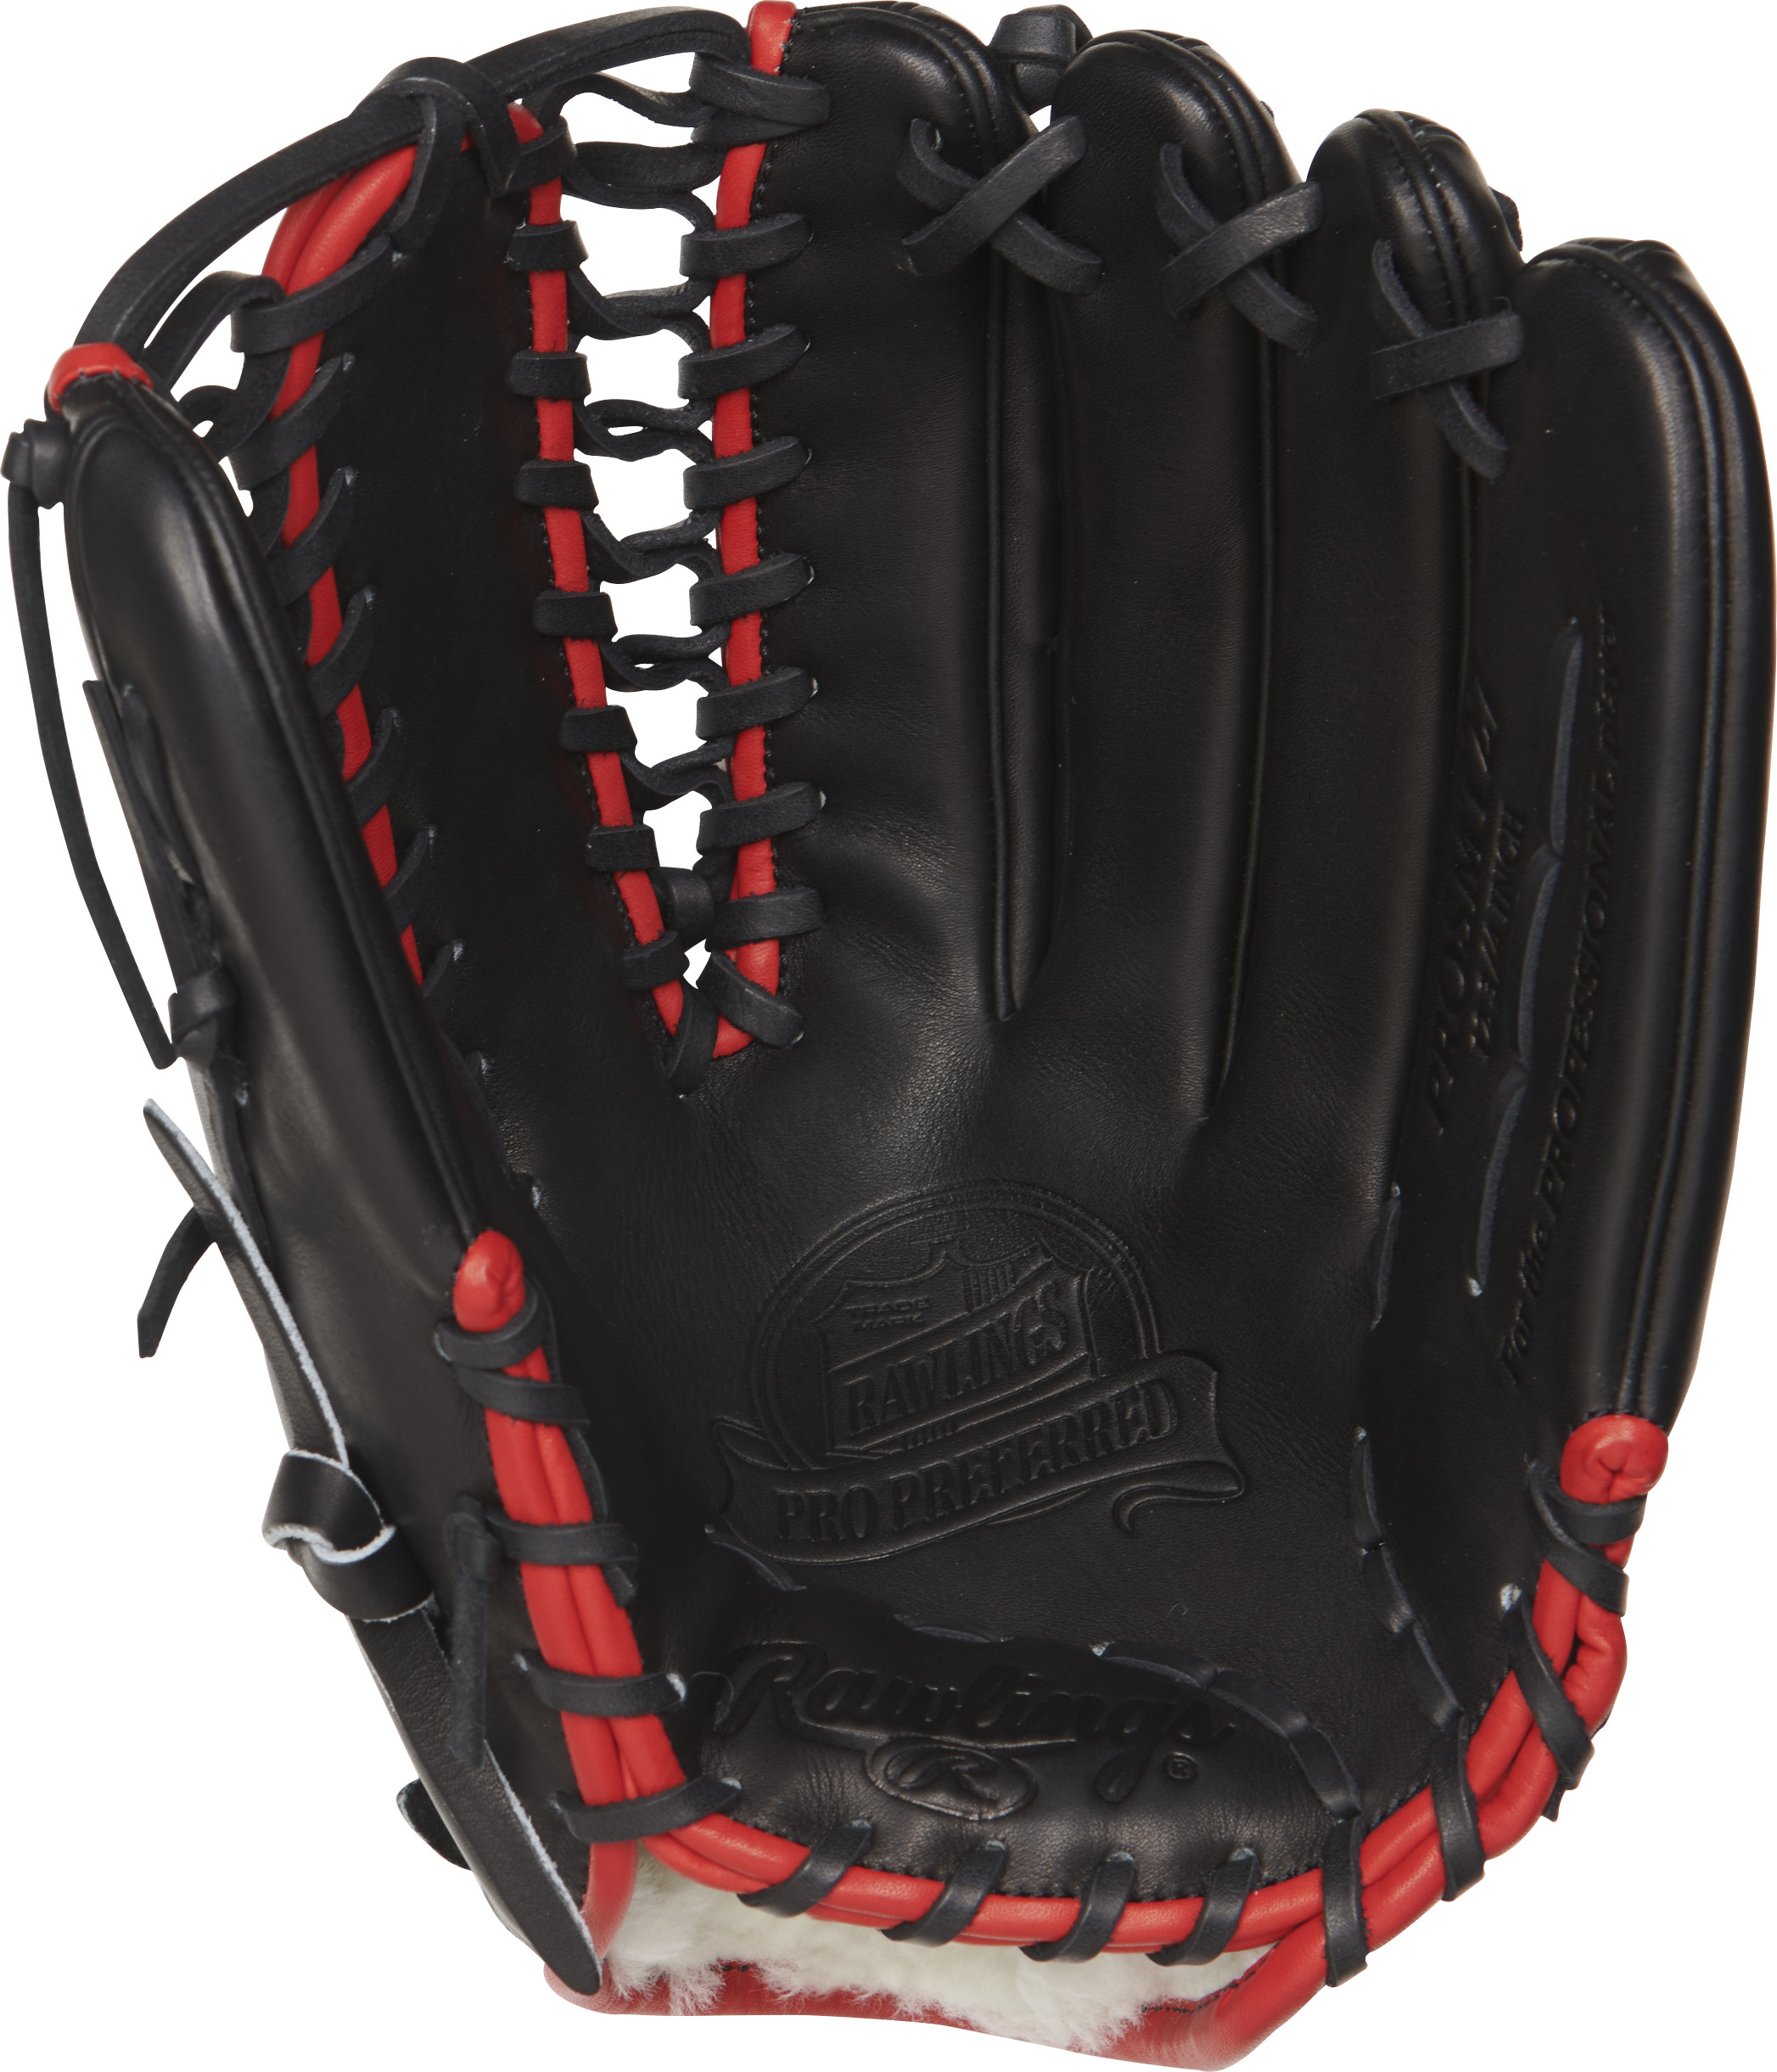 http://www.bestbatdeals.com/images/gloves/rawlings/PROSMT27-1.jpg